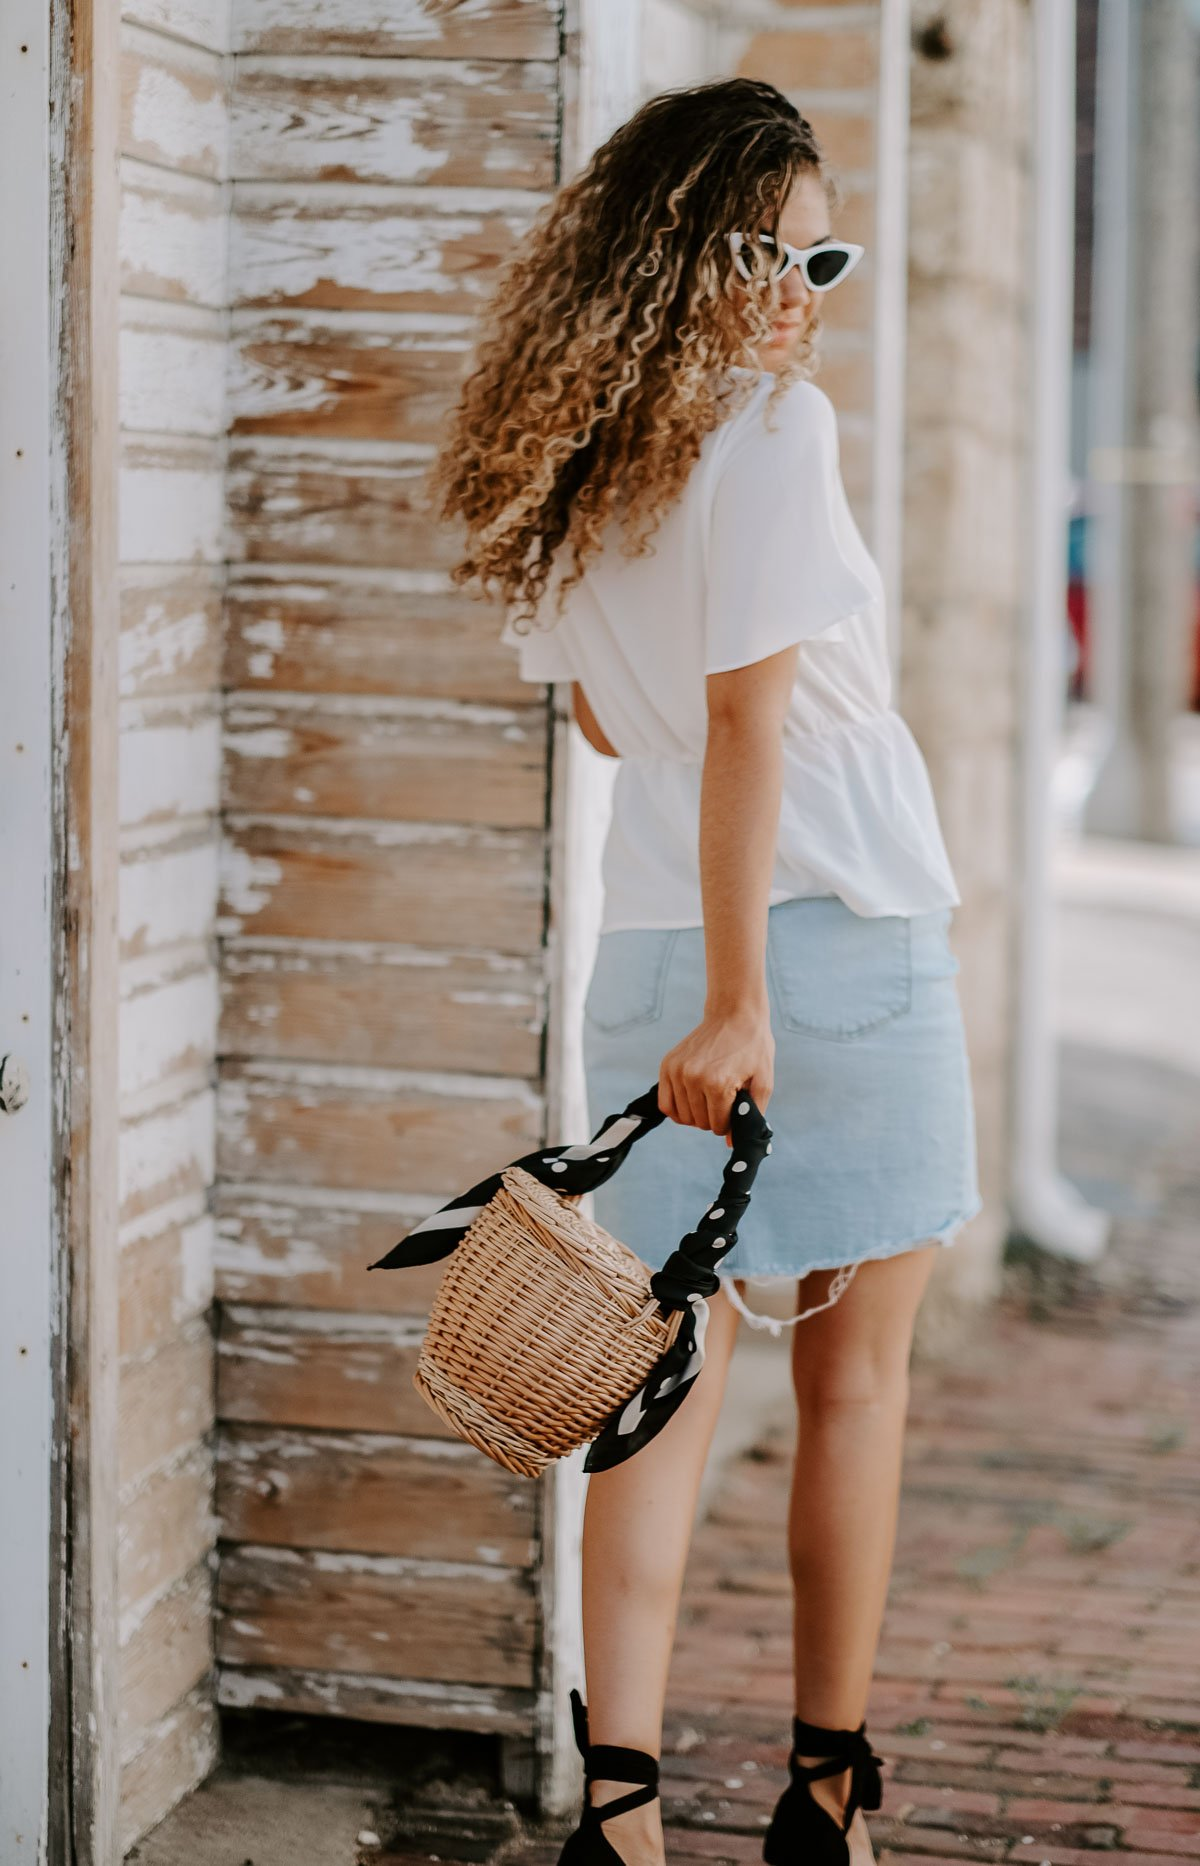 denim skirt and espadrilles Parisian style summer outfit